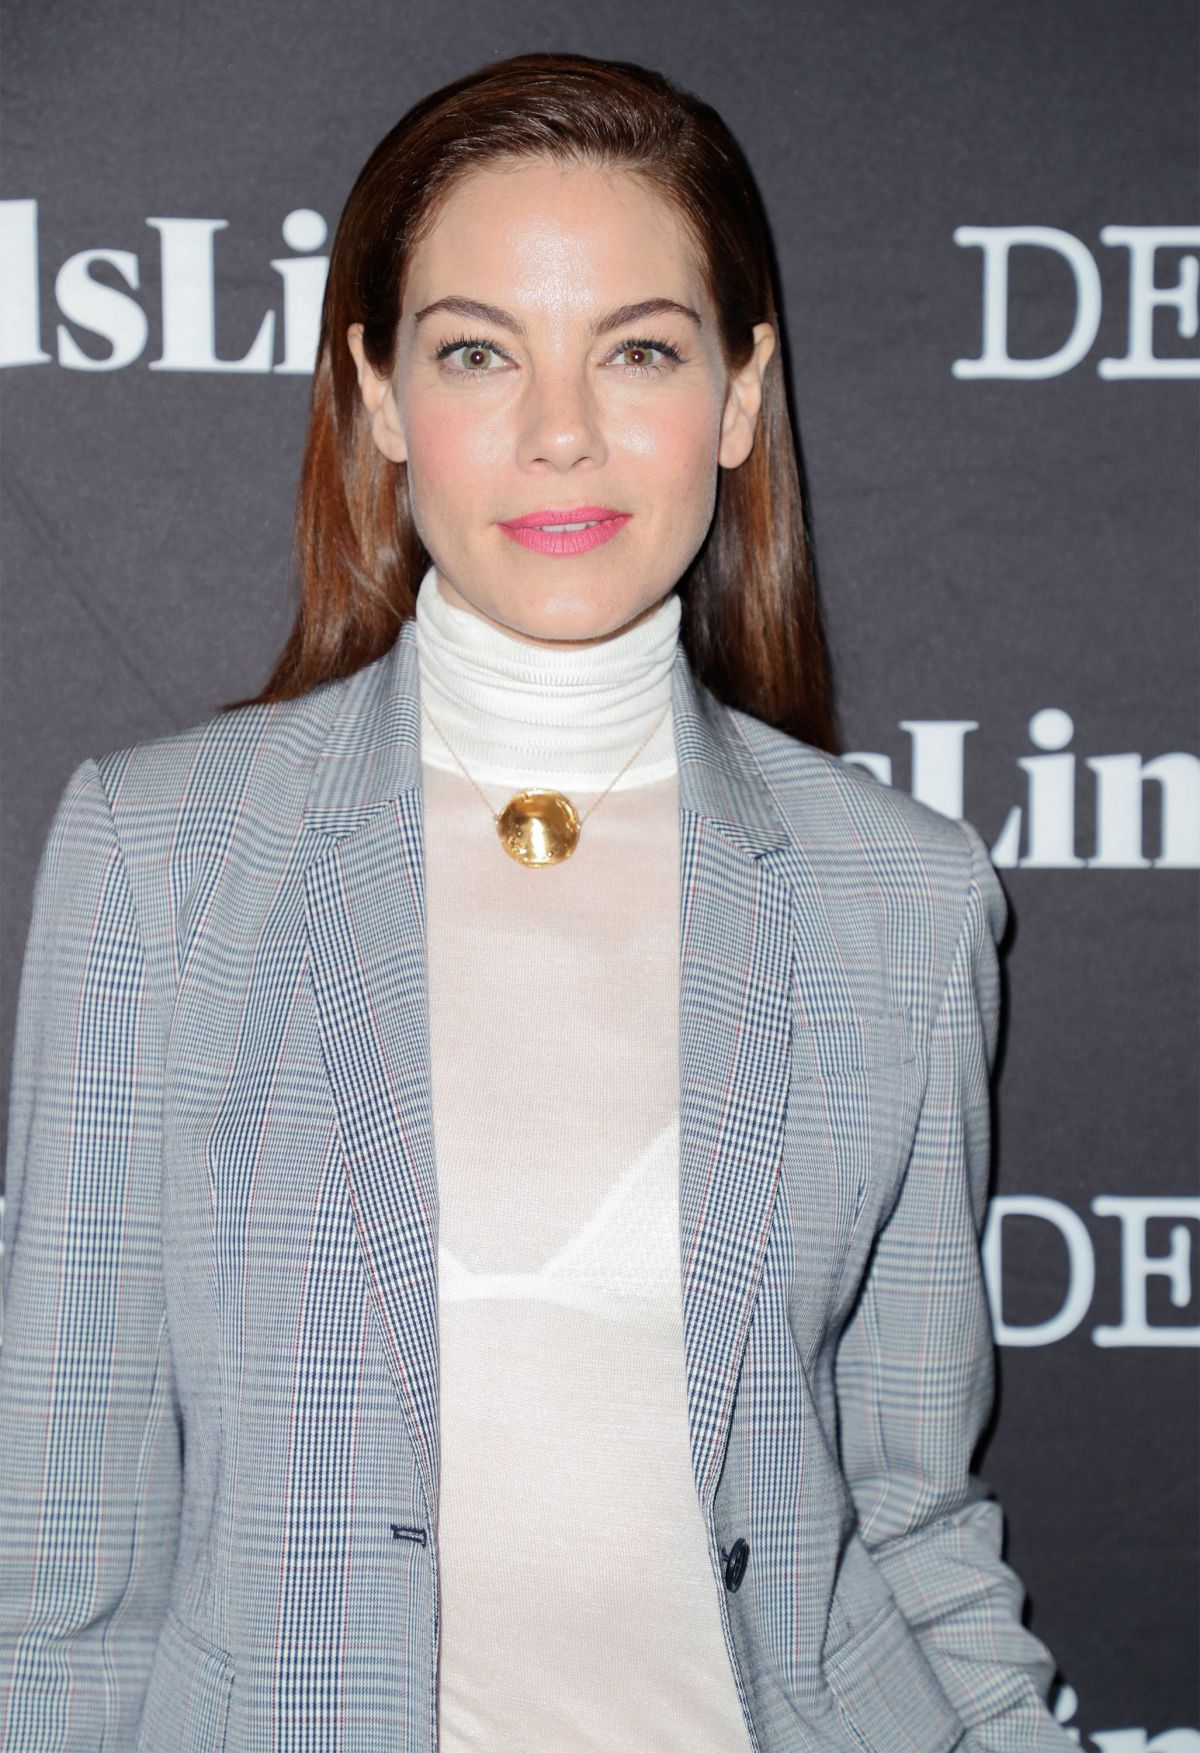 MICHELLE MONAGHAN at Contenders Emmys Presented by Deadline in Los Angeles 04/09/2017